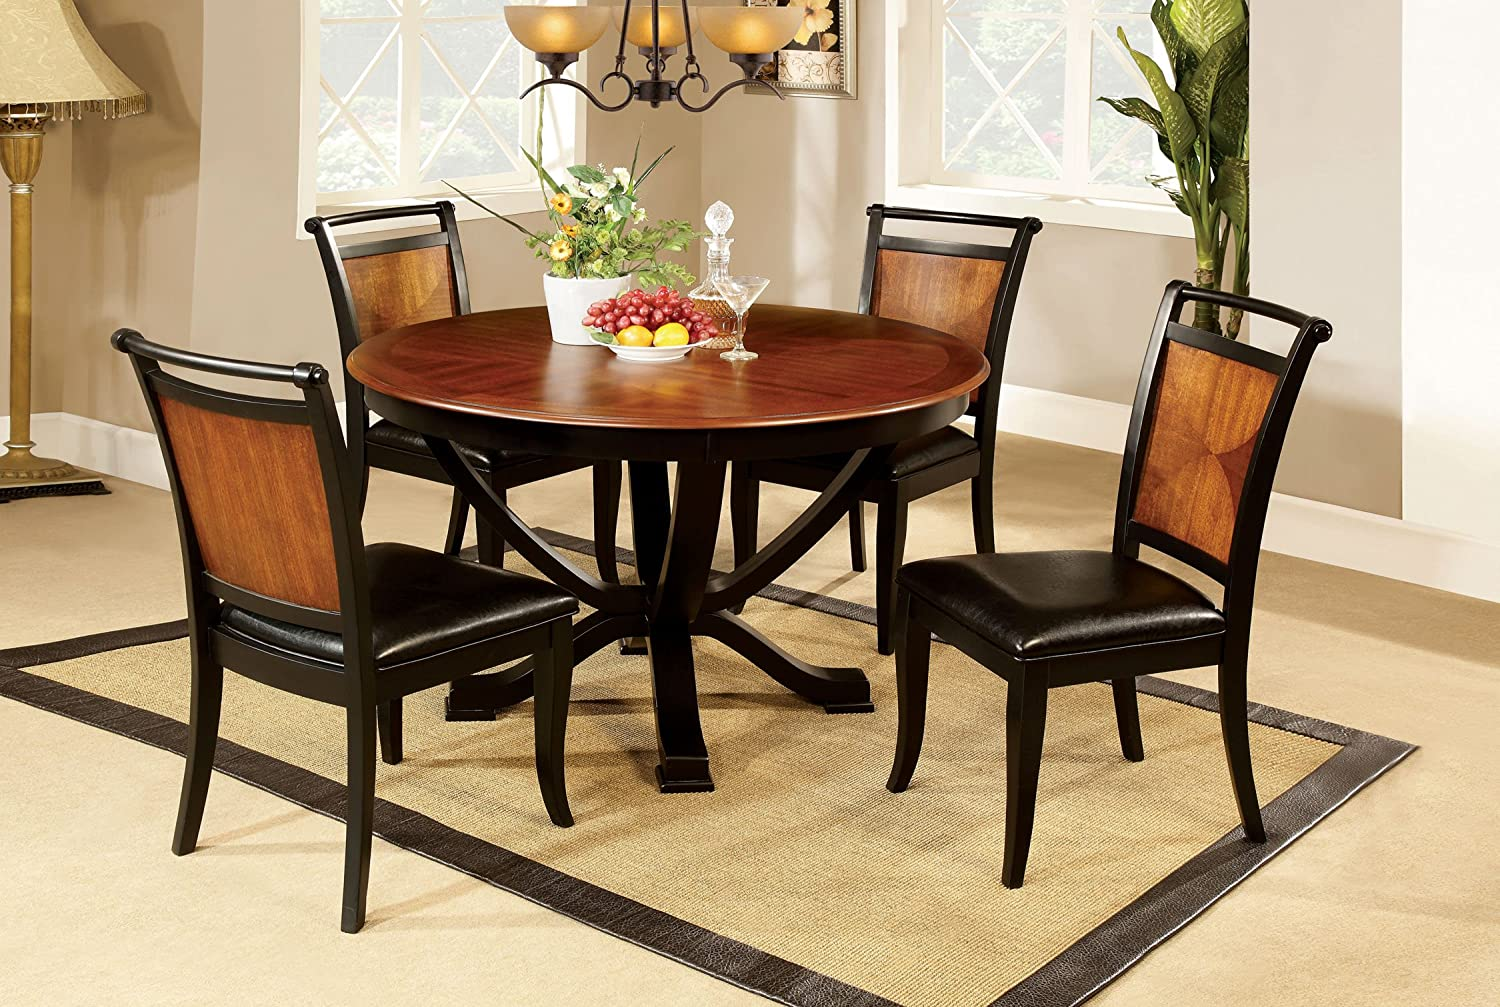 Round Wood Kitchen Table Sets Amazon furniture of america sahrifa 5 piece duotone round amazon furniture of america sahrifa 5 piece duotone round dining table set acacia and black finish table chair sets workwithnaturefo